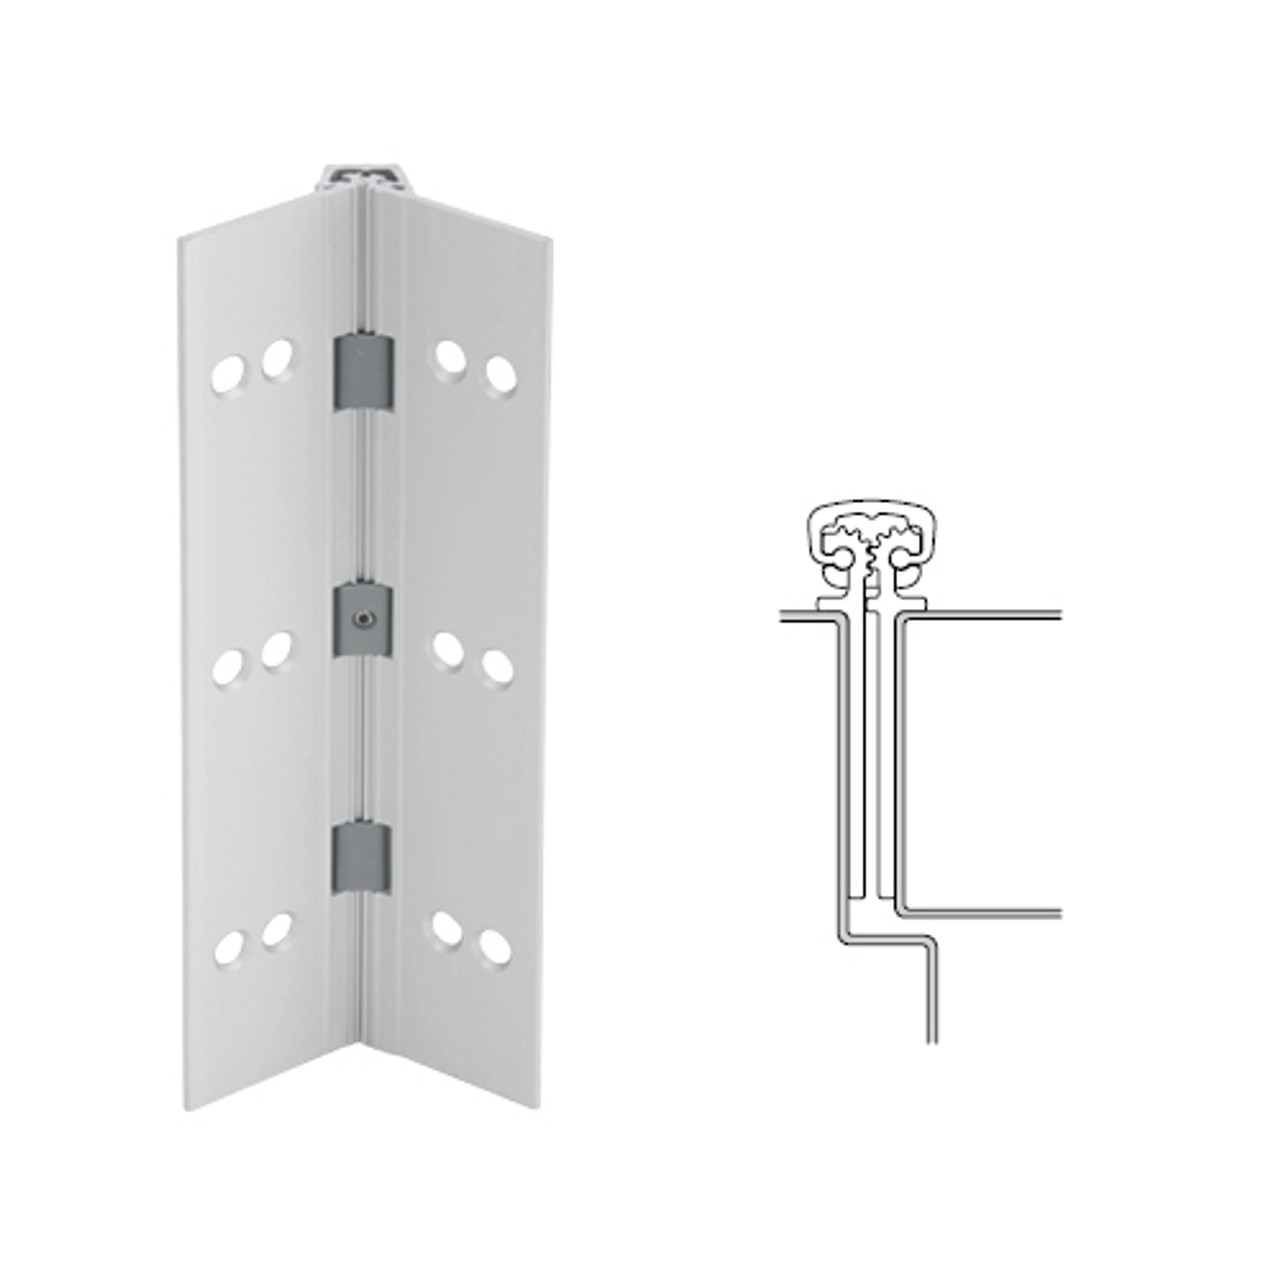 027XY-US28-83-TEKWD IVES Full Mortise Continuous Geared Hinges with Wood Screws in Satin Aluminum